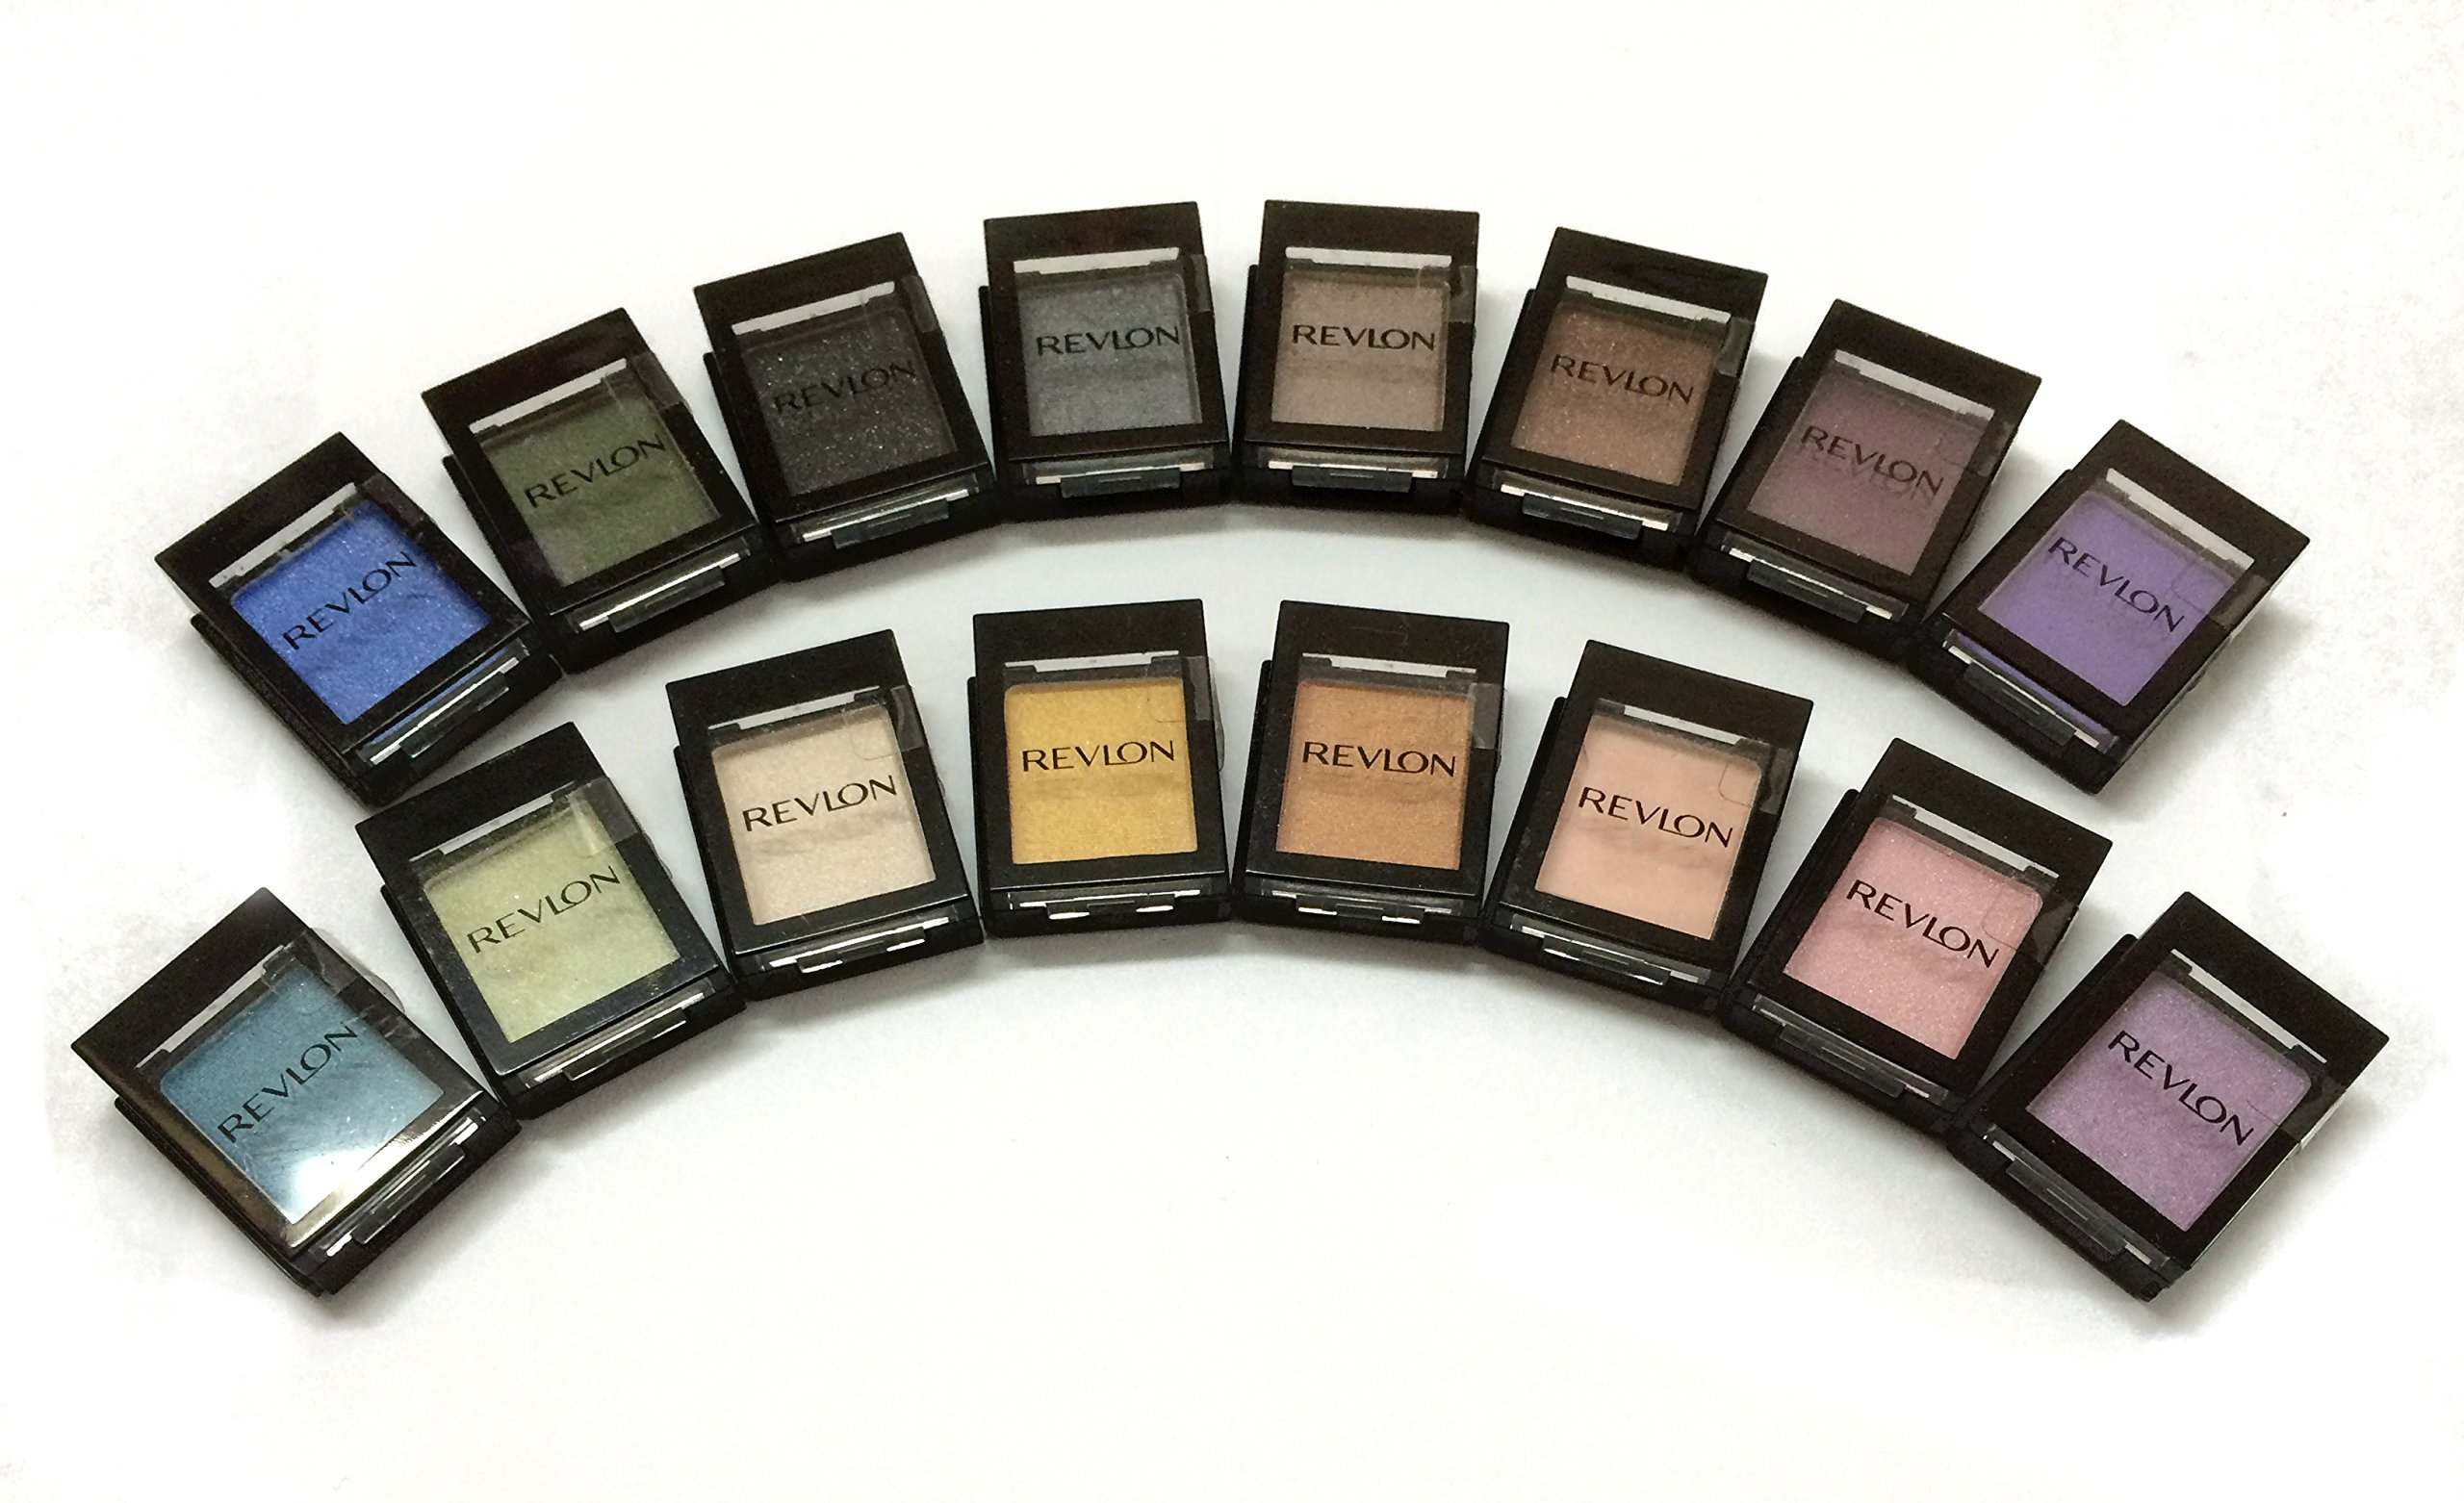 Revlon Colorstay Shadowlinks Eyeshadow Colection 16 Colors Per Pack.